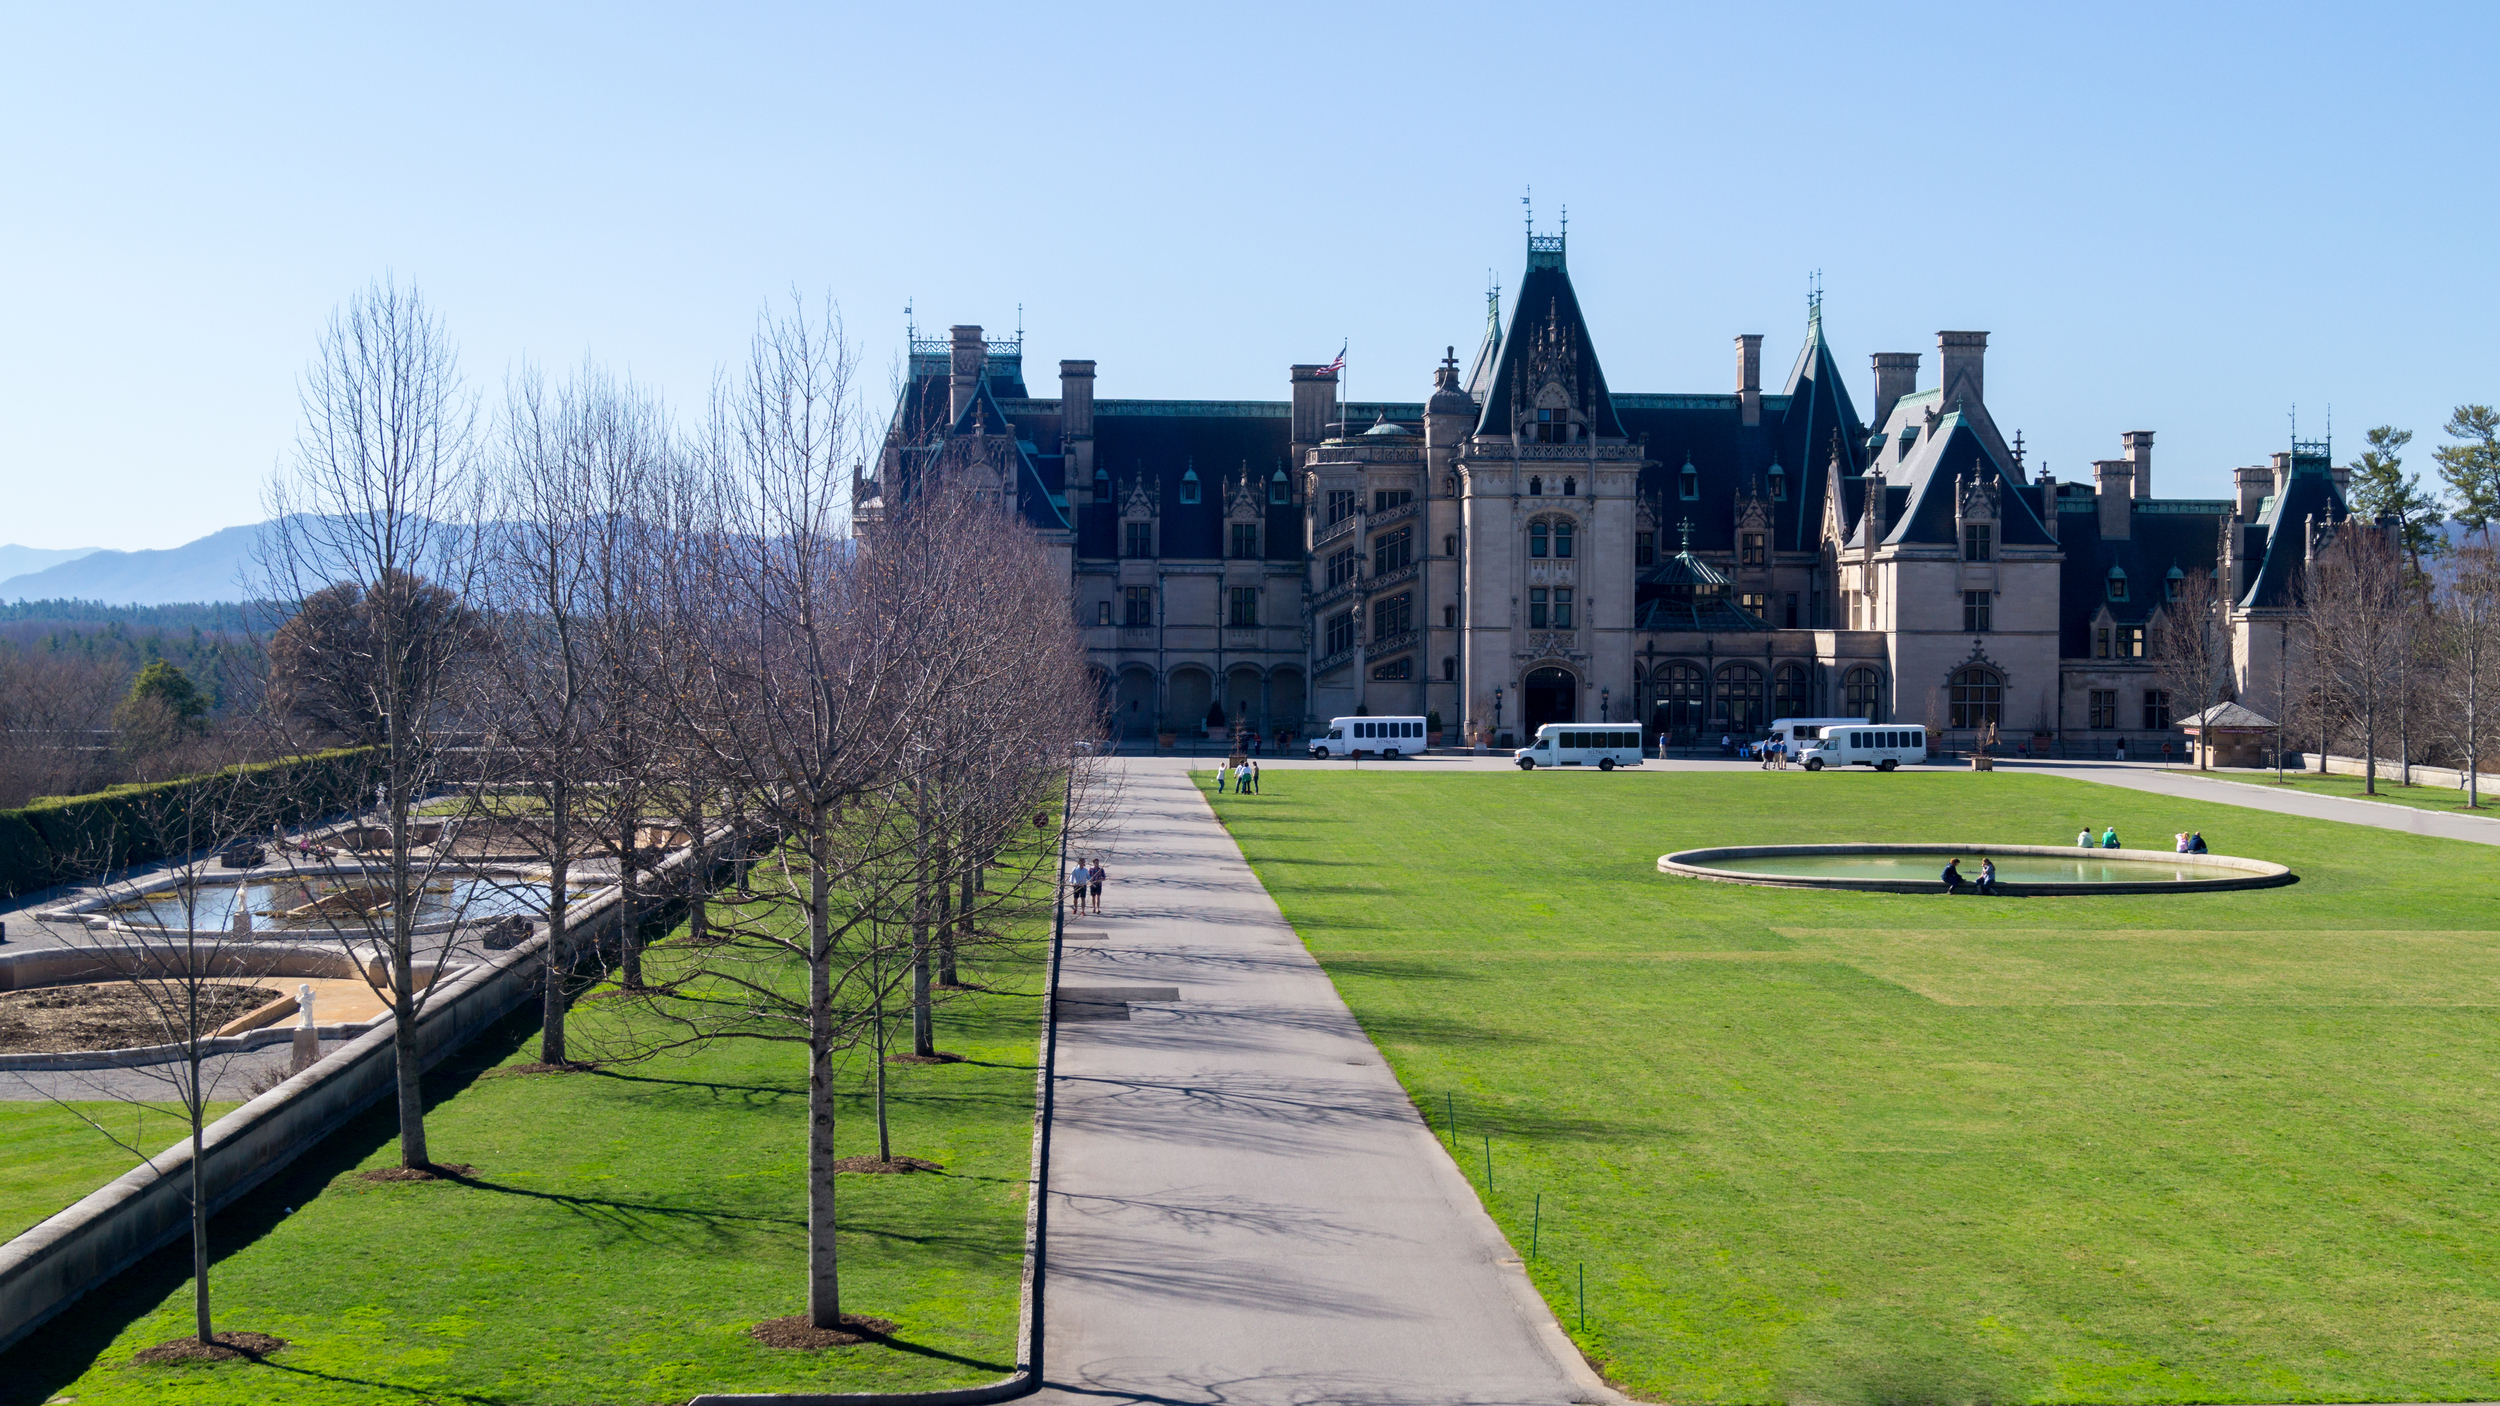 A shot of the entire area in front of the Biltmore Mansion plus the mansion in the background.